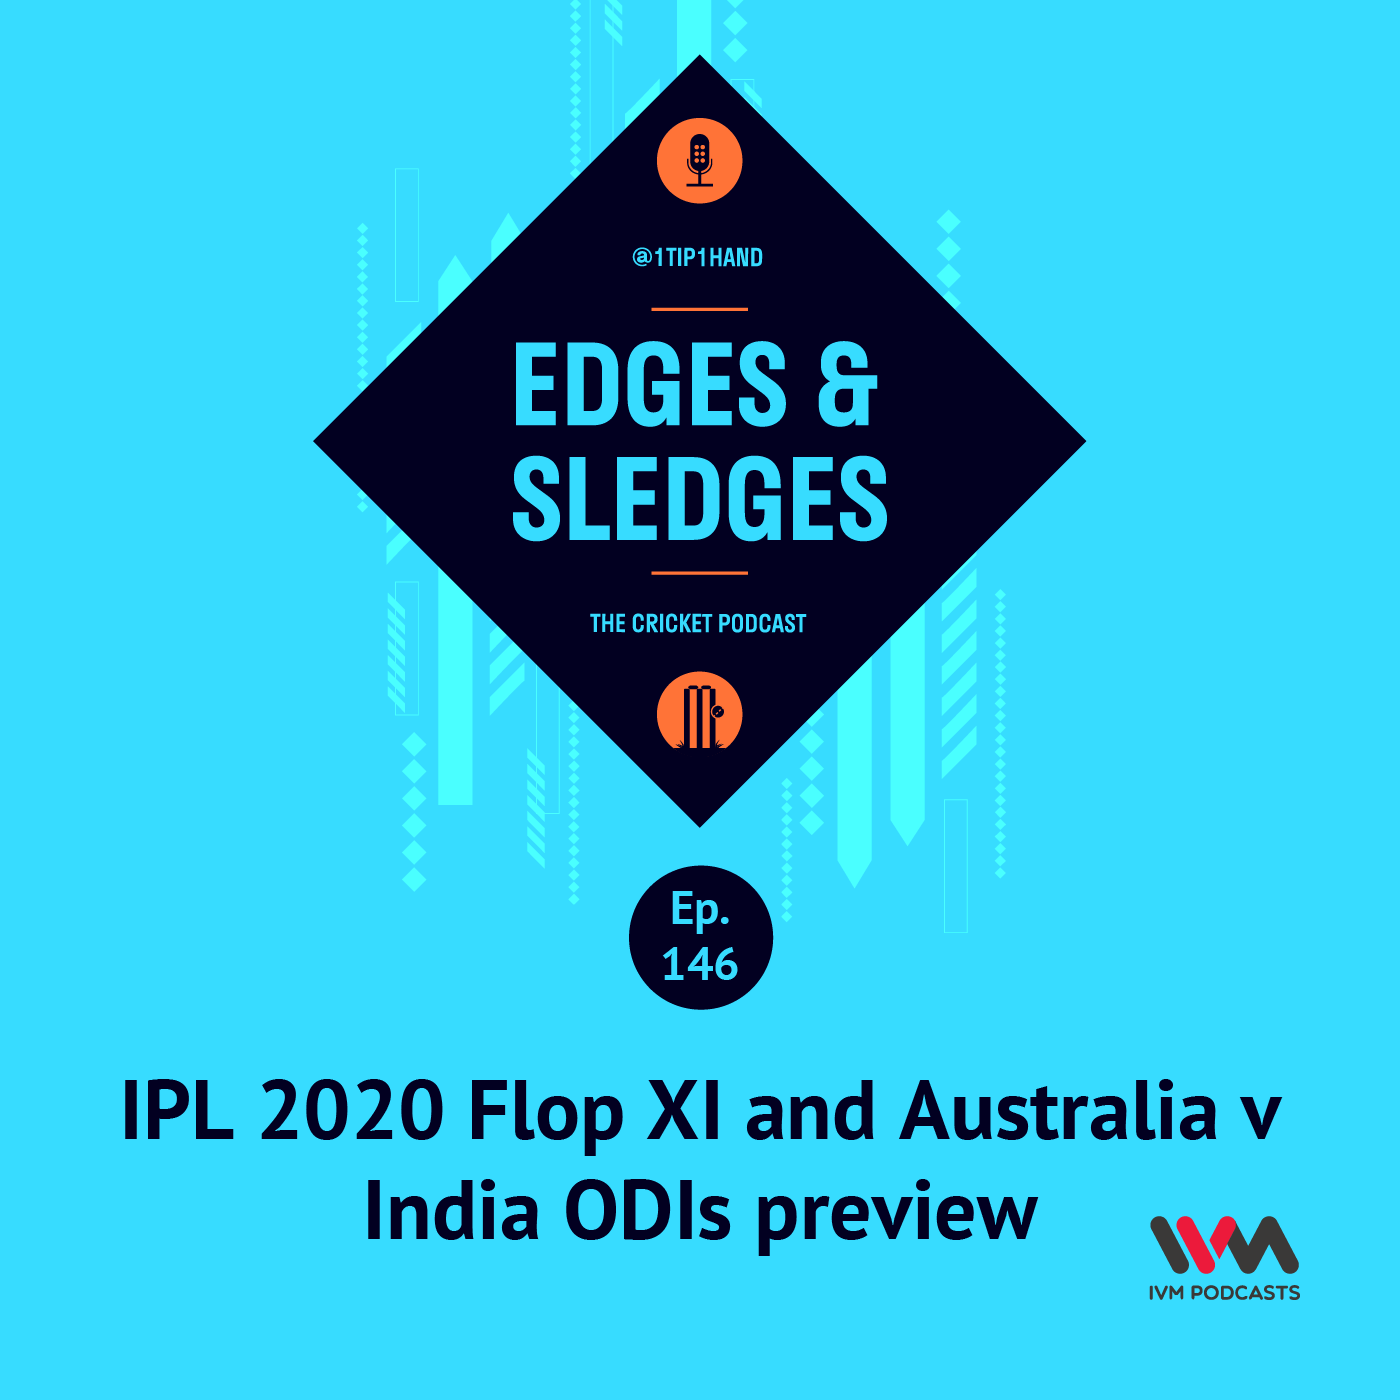 Ep. 146: IPL 2020 Flop XI and Australia v India ODIs preview